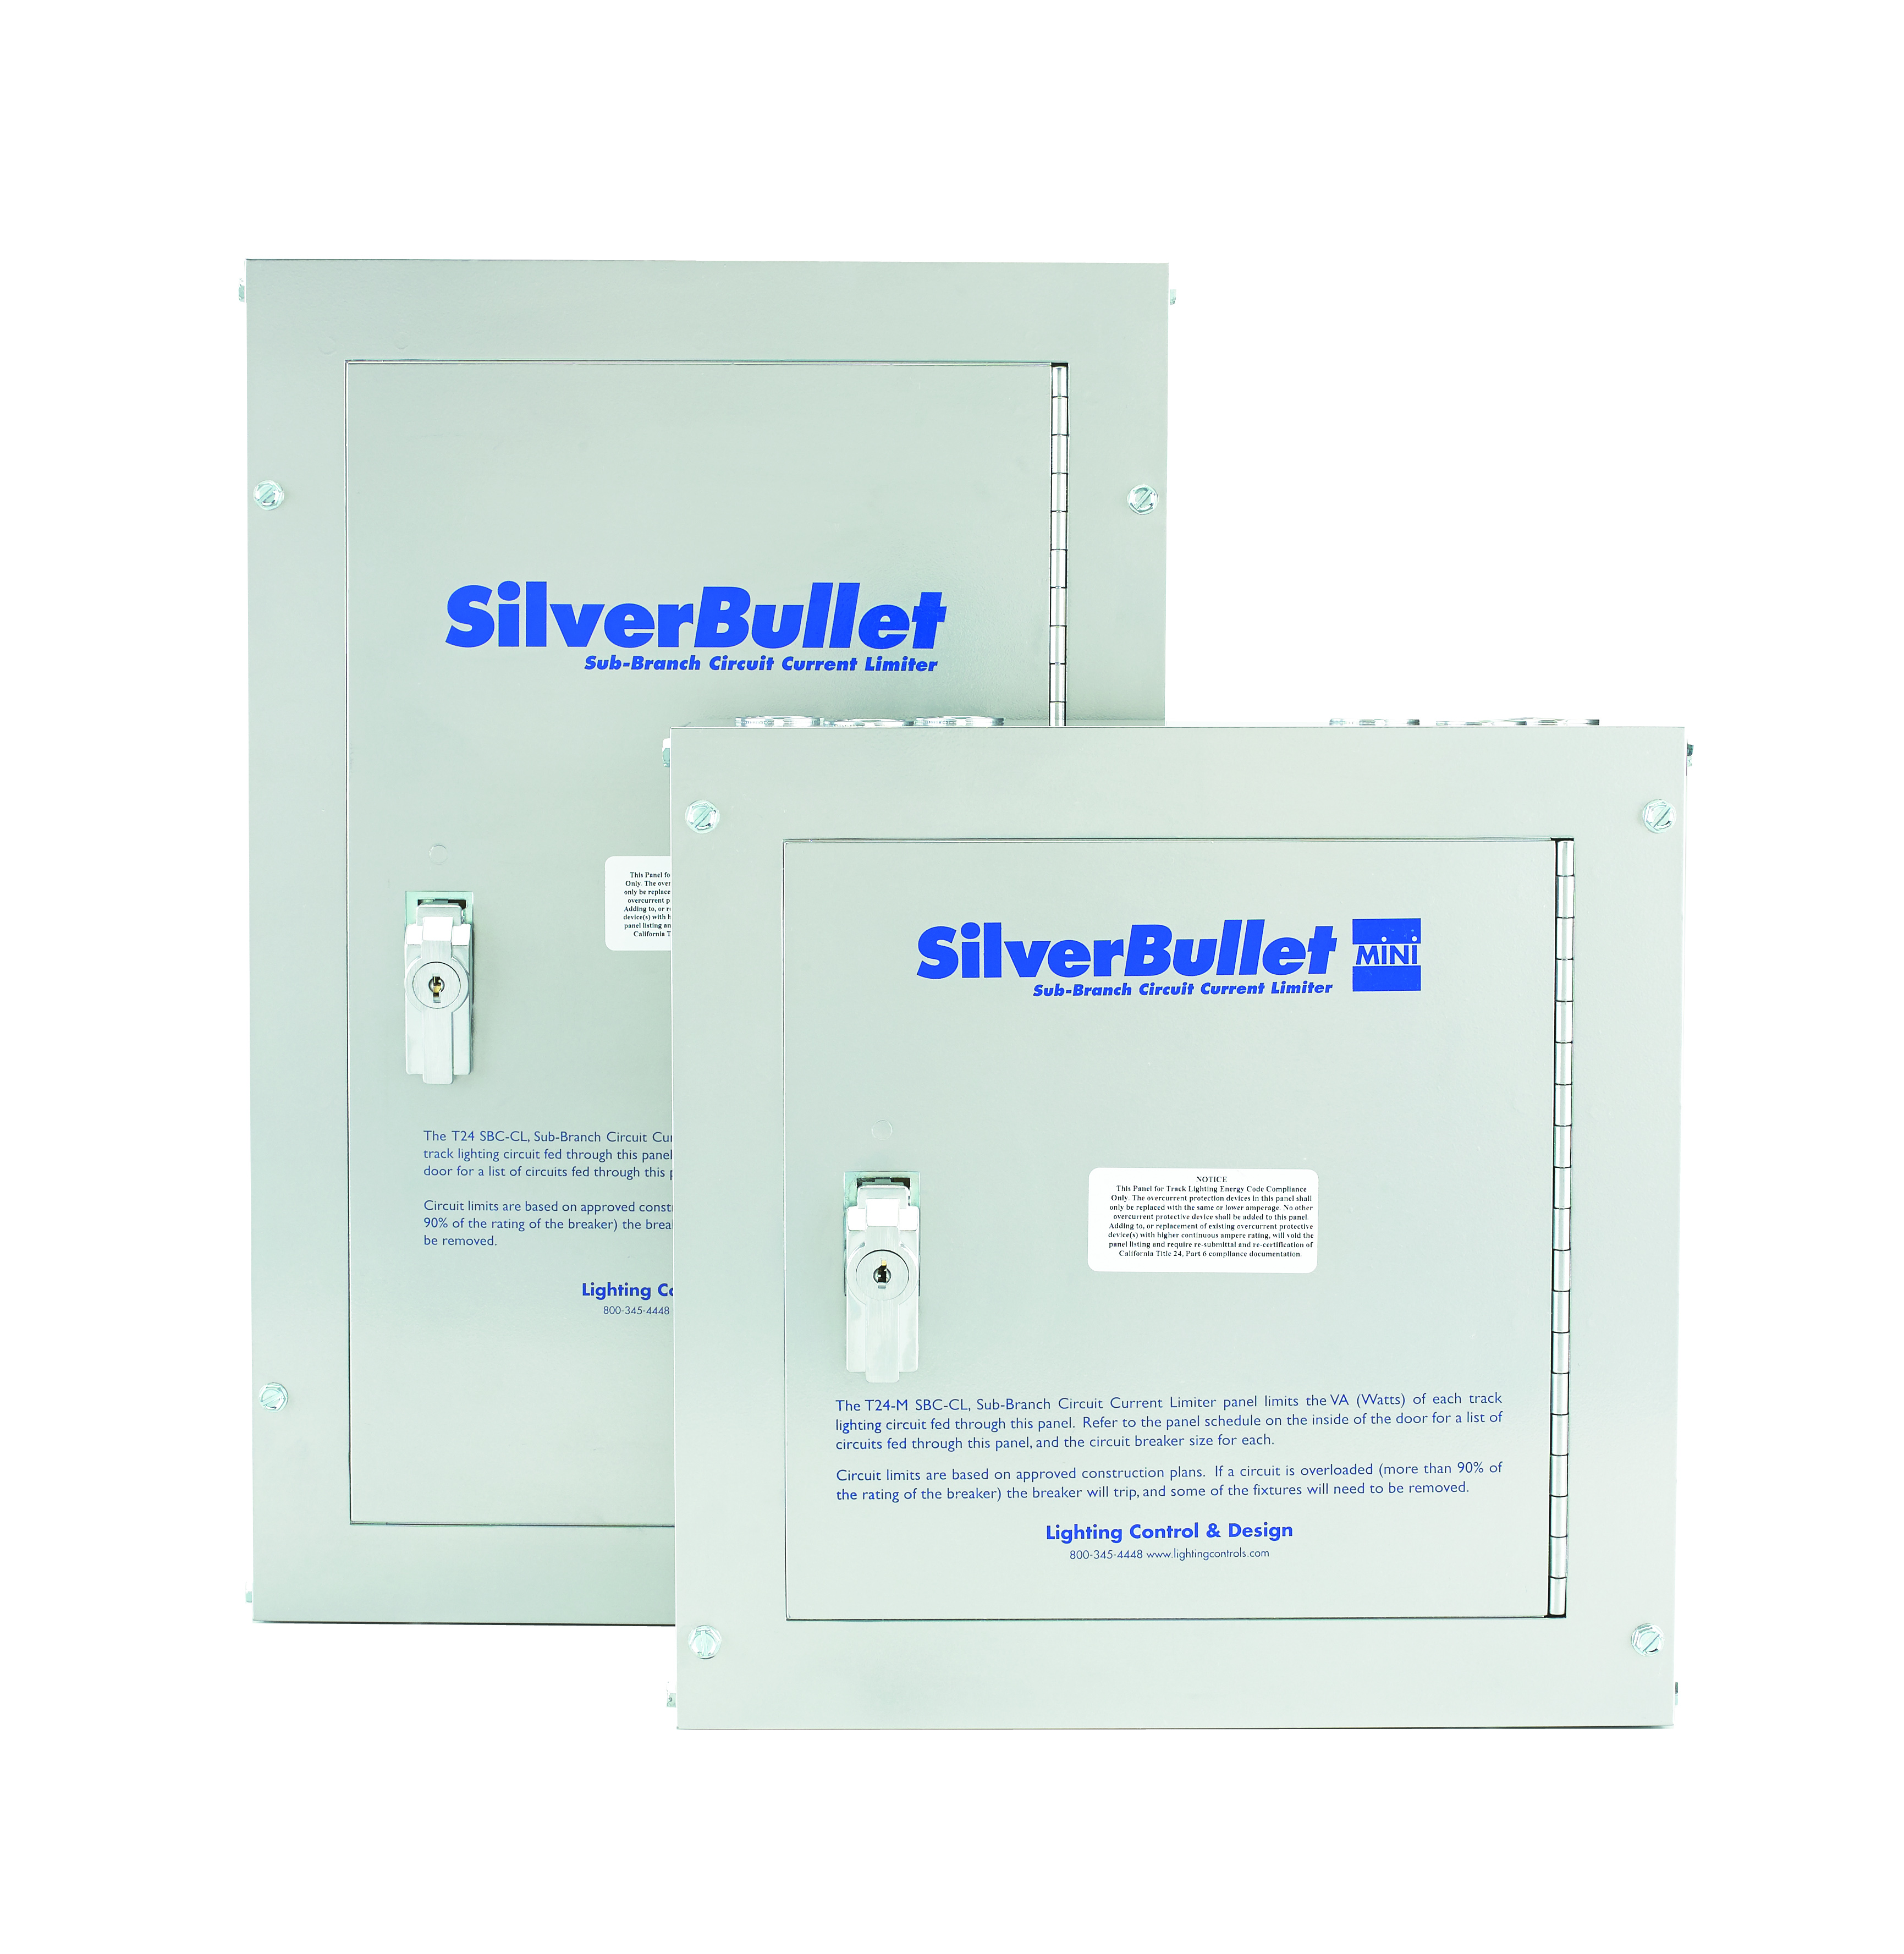 The Silverbullet Sub Branch Circuit Current Limiter